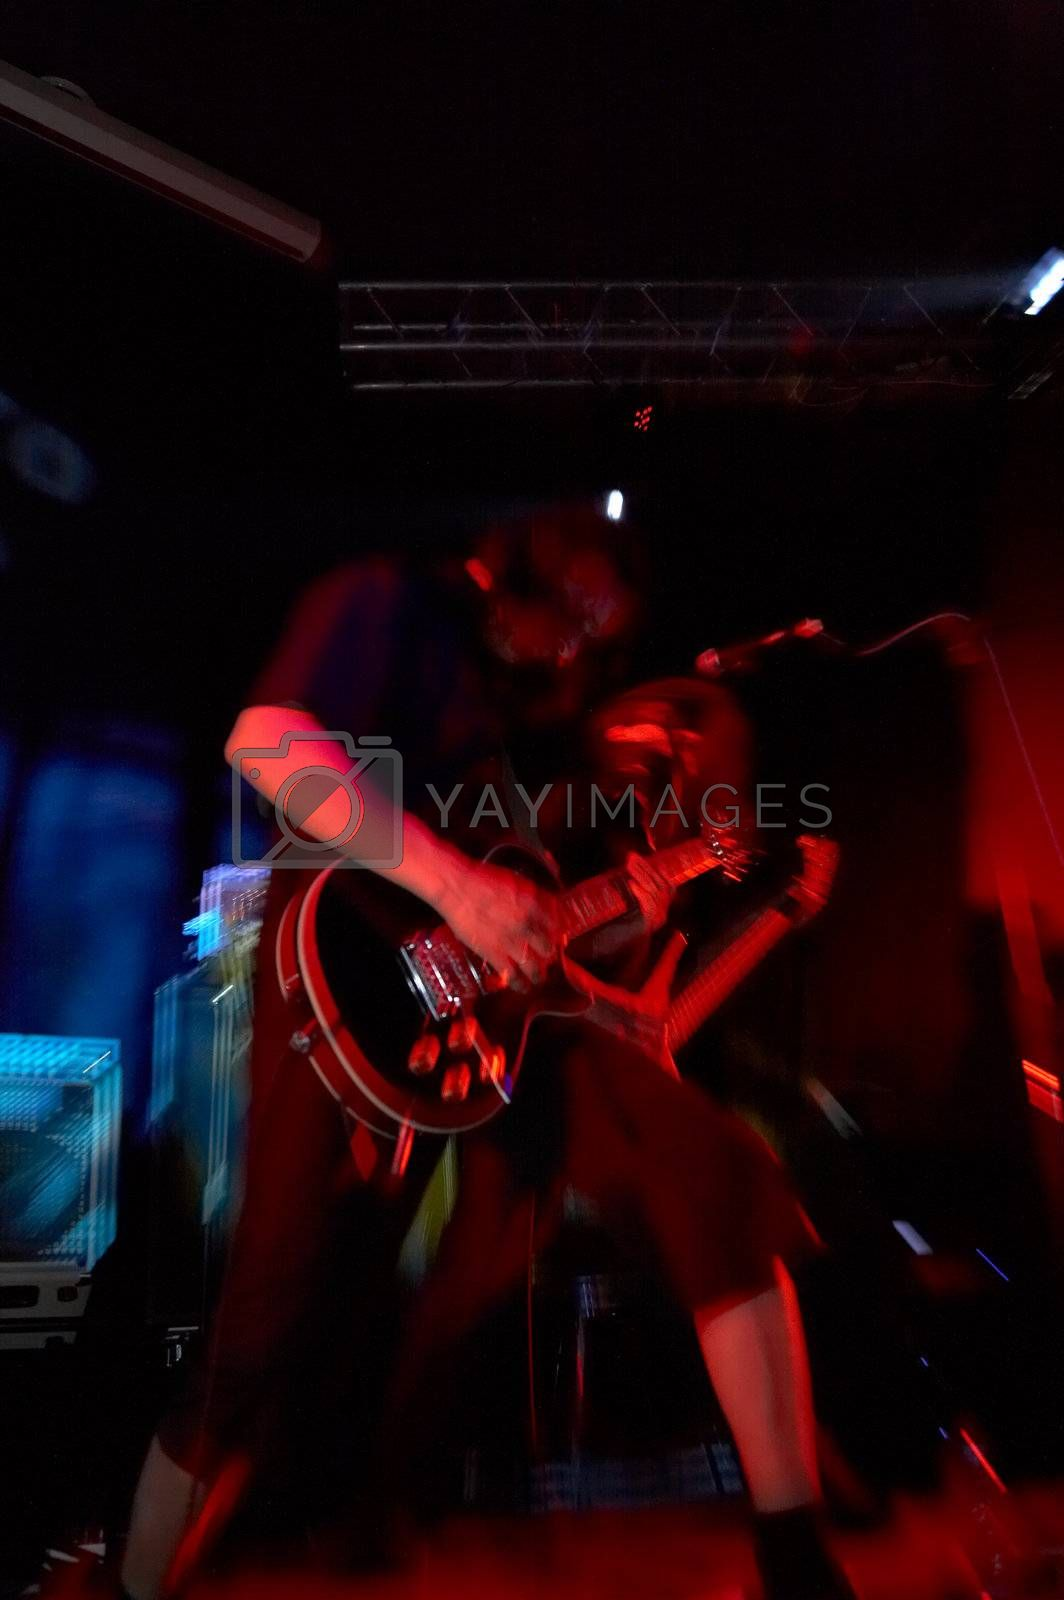 Royalty free image of Rock-guitarist on live concert with motion effect by DeusNoxious